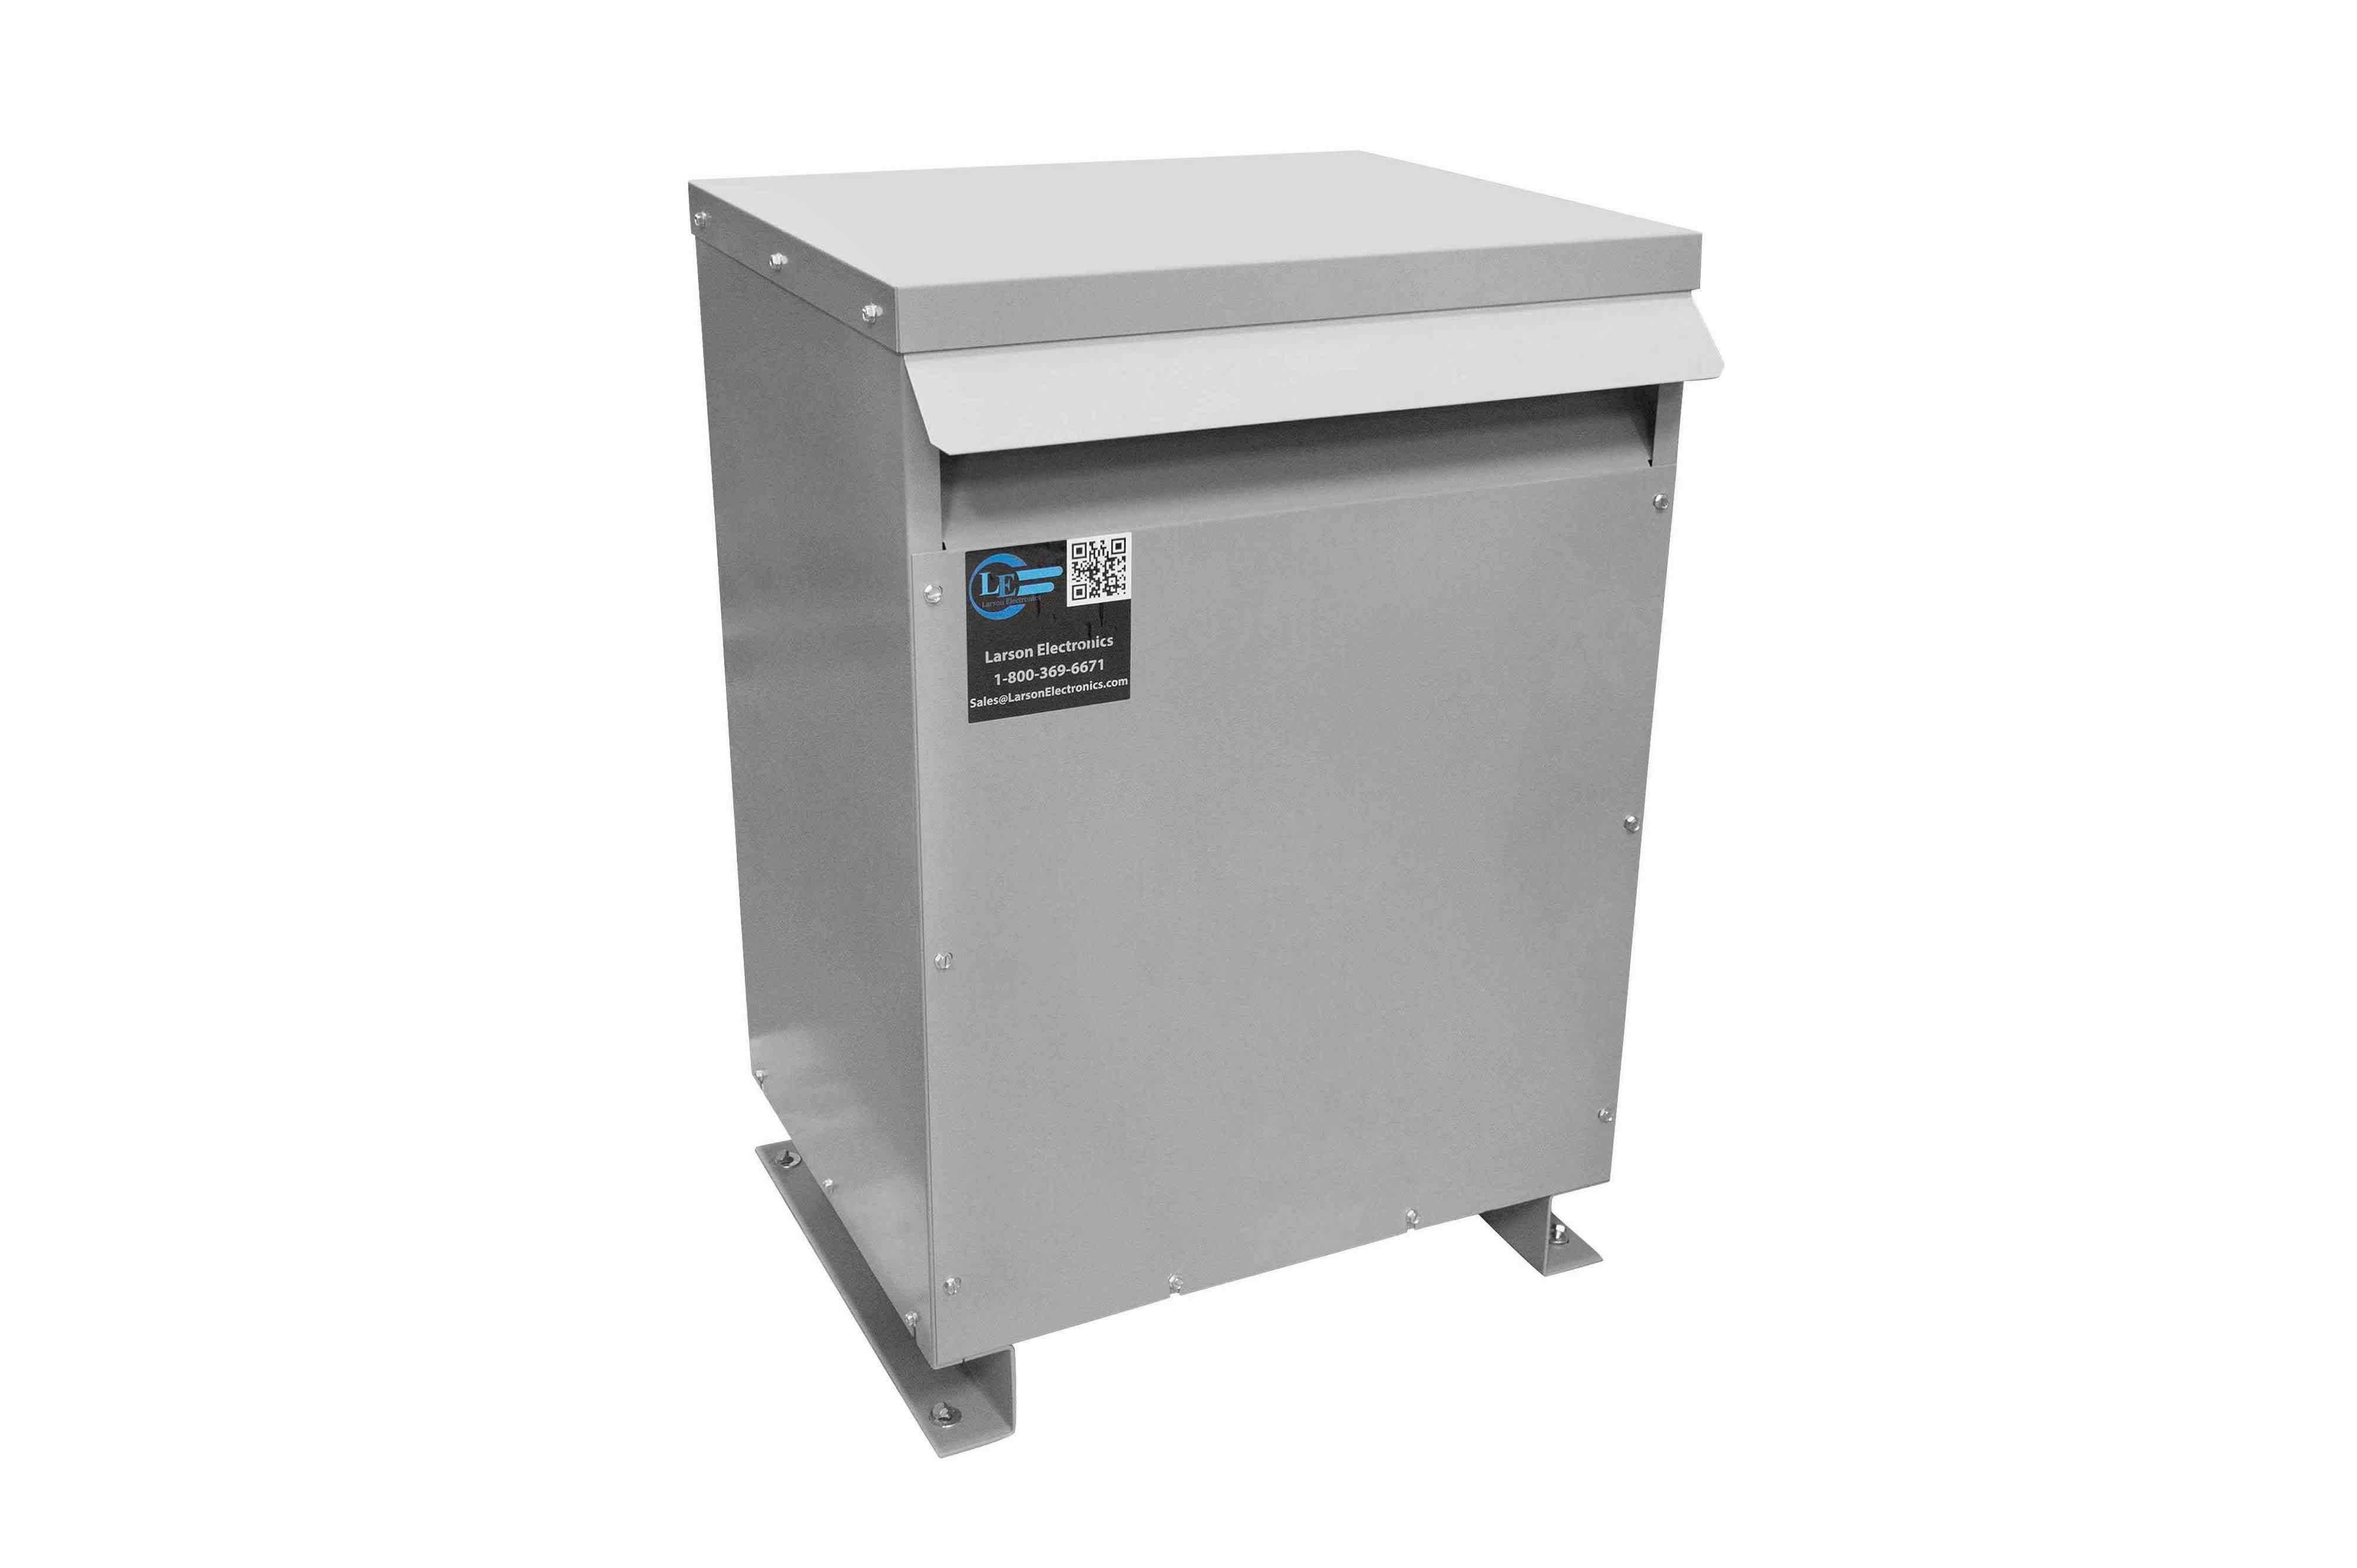 200 kVA 3PH Isolation Transformer, 600V Wye Primary, 380Y/220 Wye-N Secondary, N3R, Ventilated, 60 Hz